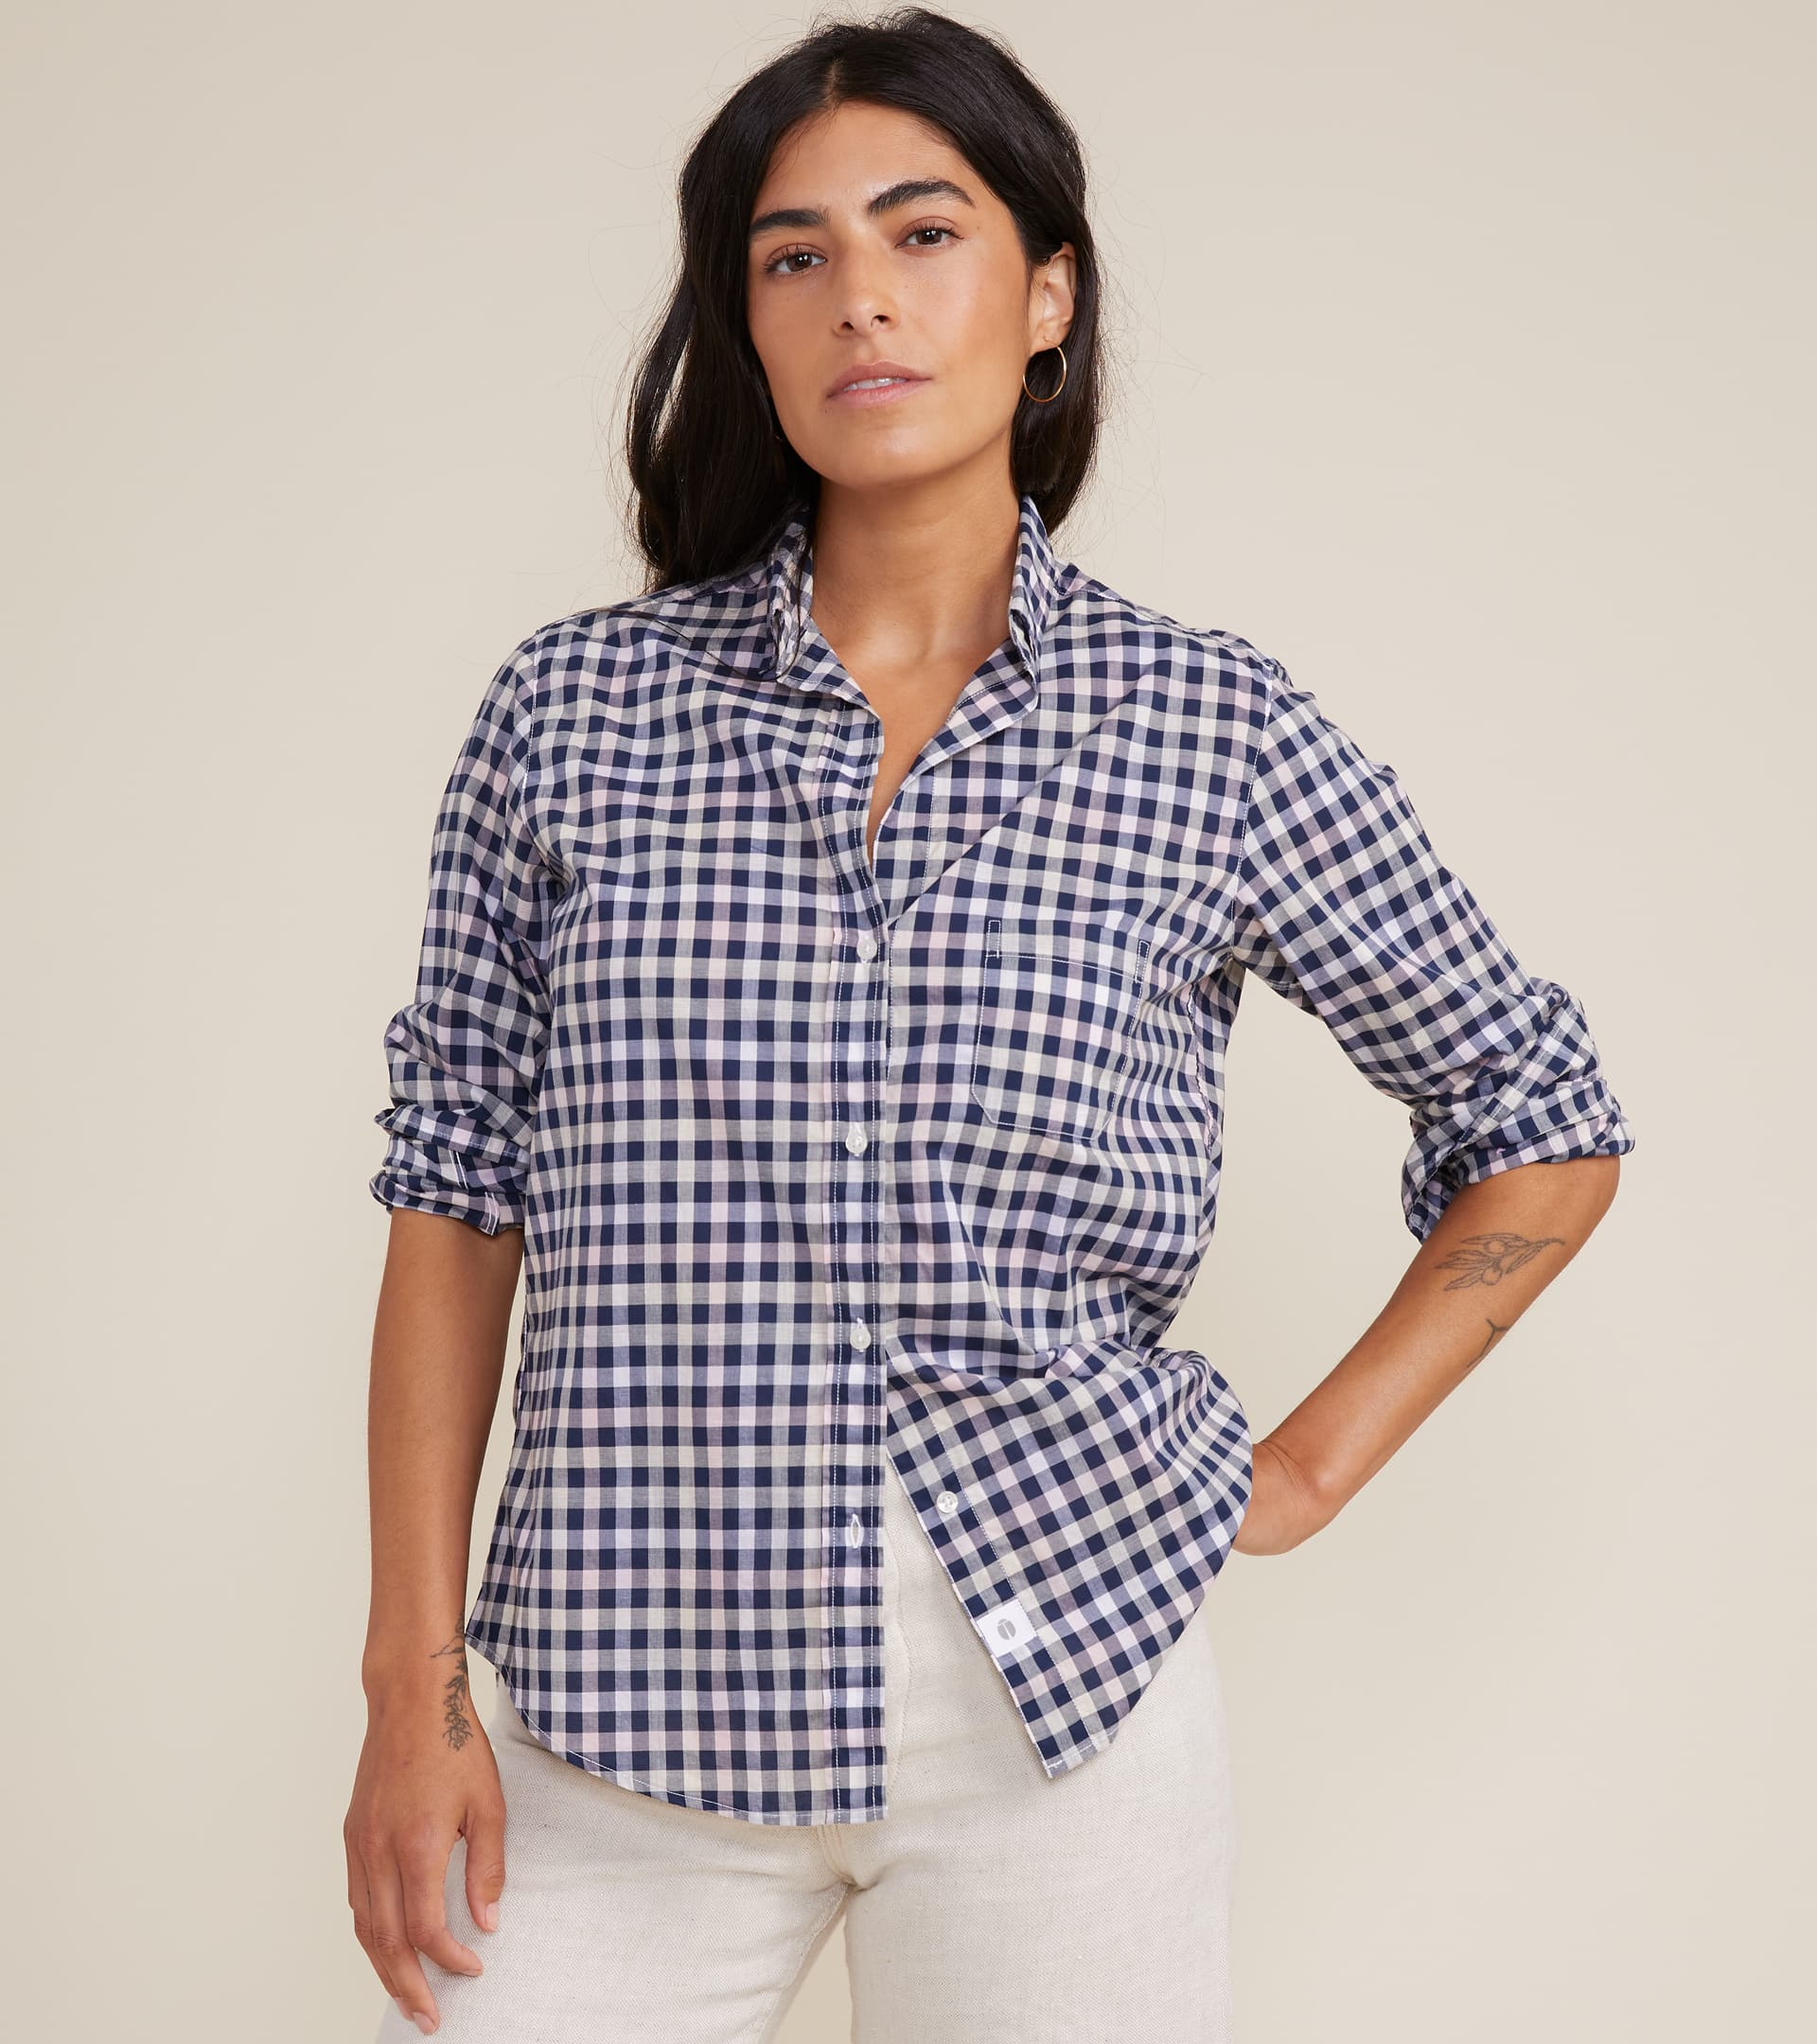 Image of The Hero Button up Shirt in Multi Check, Cool Cotton